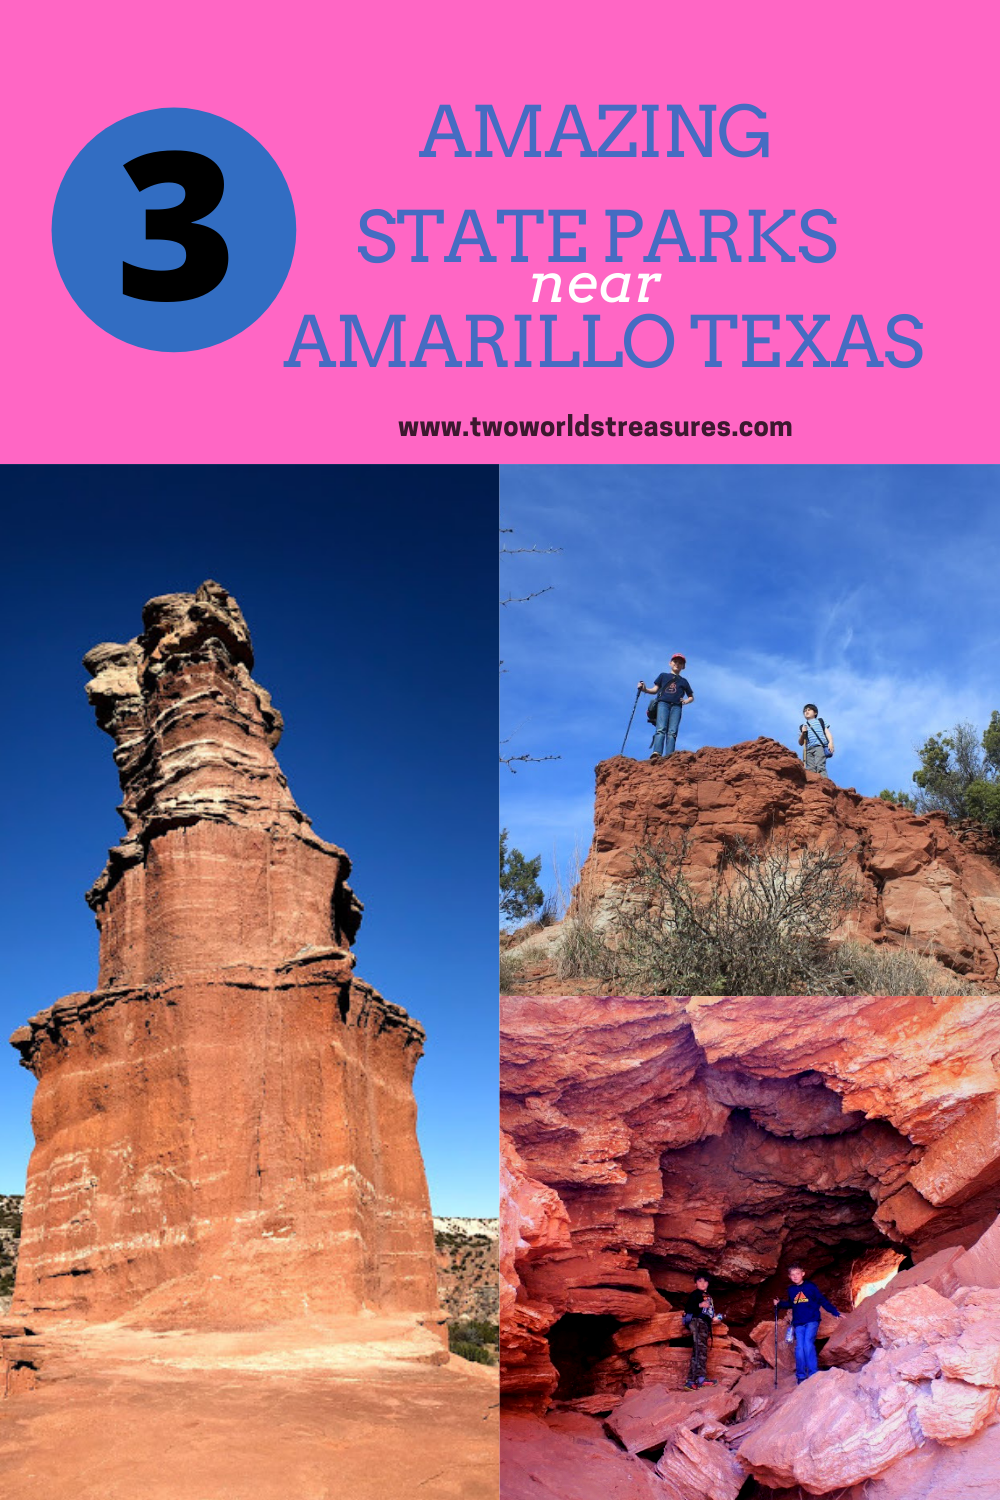 Texas State Parks near Amarillo